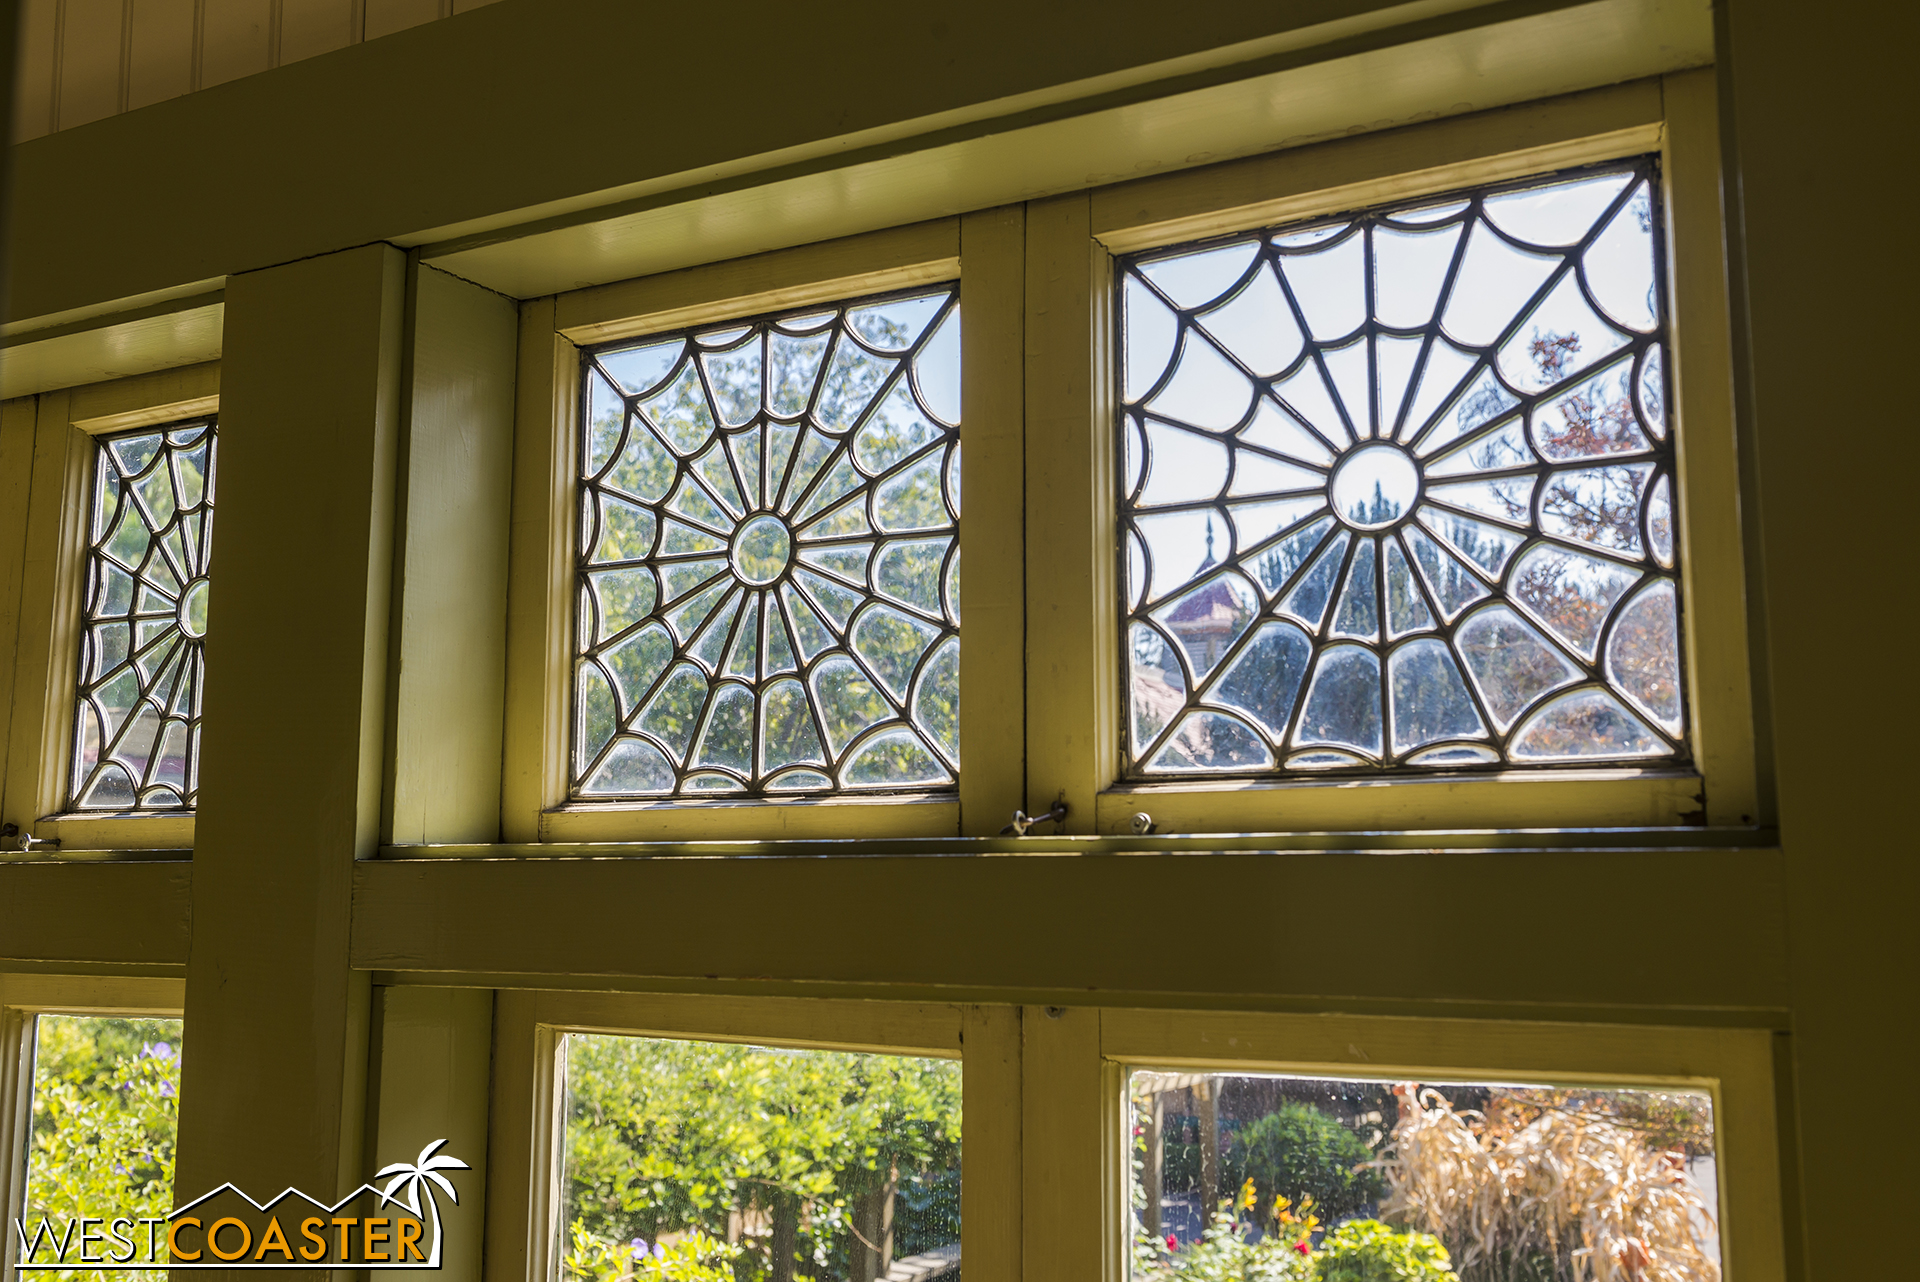 These spiderweb windows are rather fitting during the Halloween season!